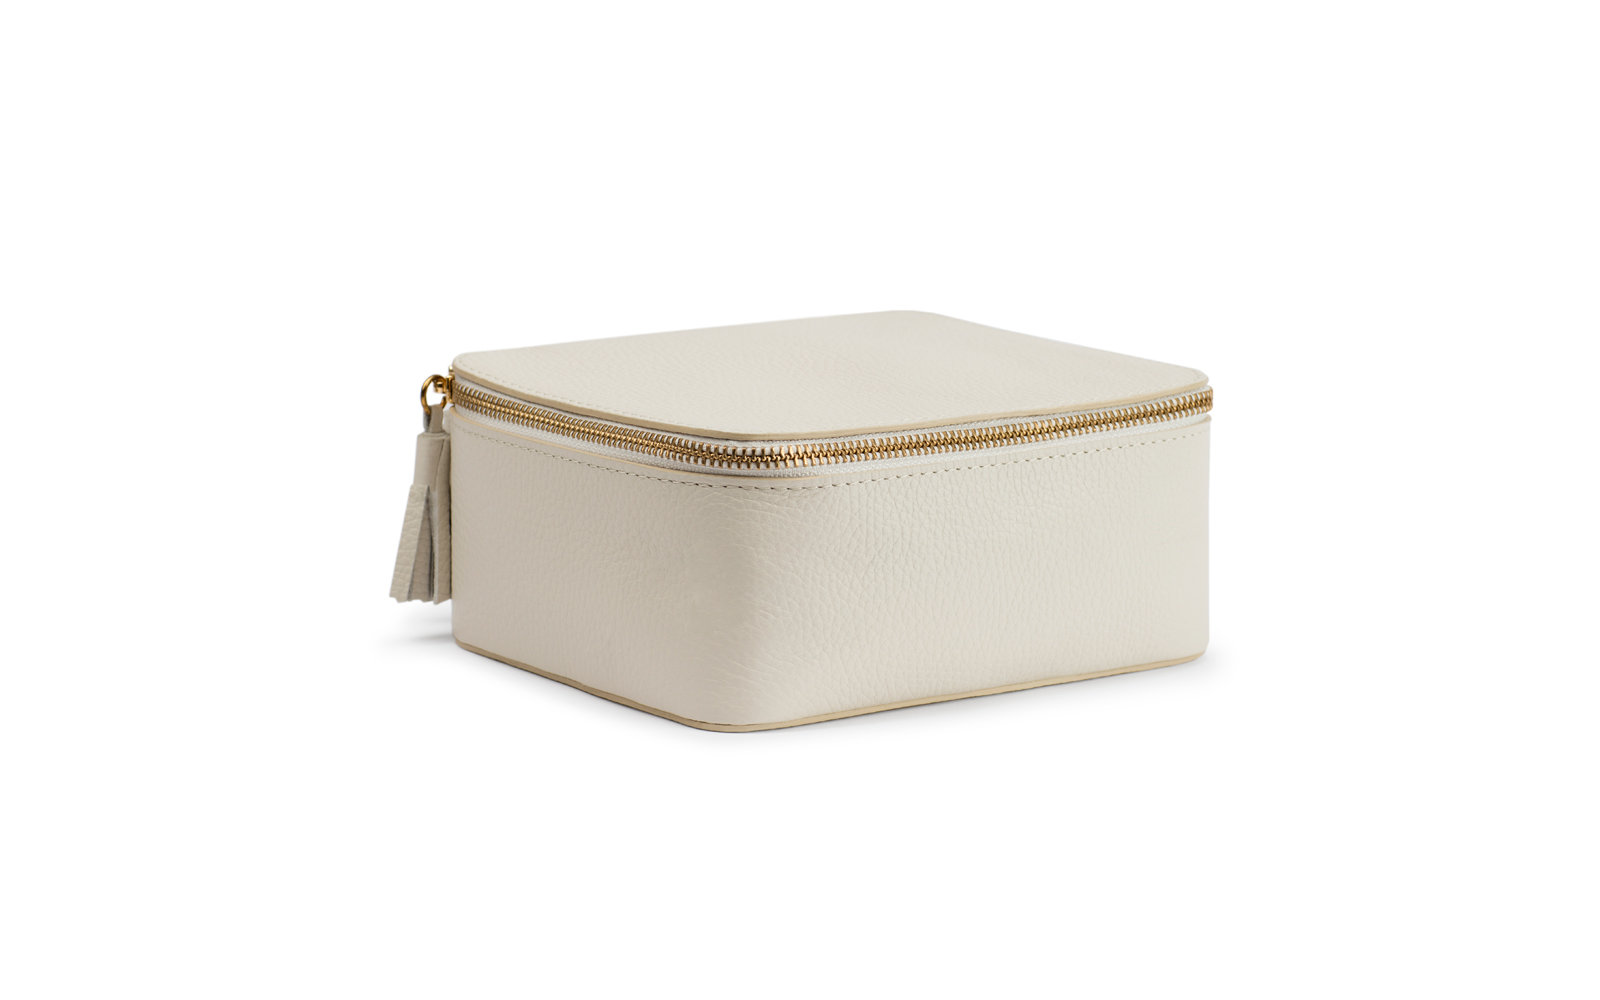 Cuyana Leather Jewelry Case